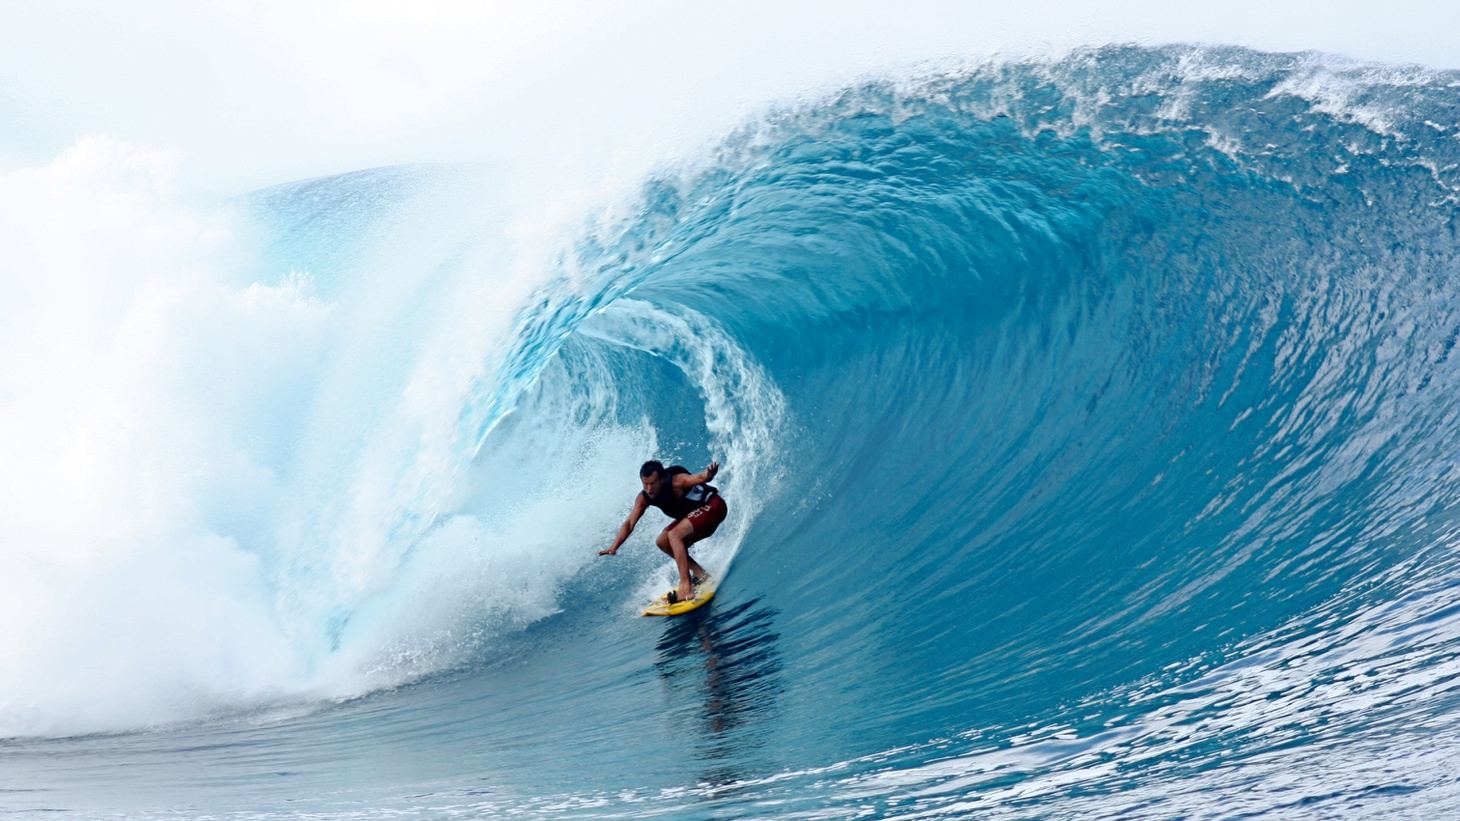 In 1978 a young writer dropped everything and toured the developing world looking for the perfect wave. Journalist William Finnegantells us what he found along the way. He's the author of  Barbarian Days: A Surfing Life .     Big wave surfing in Tahiti at Teahupoo Photo:  Duncan Rawlinson